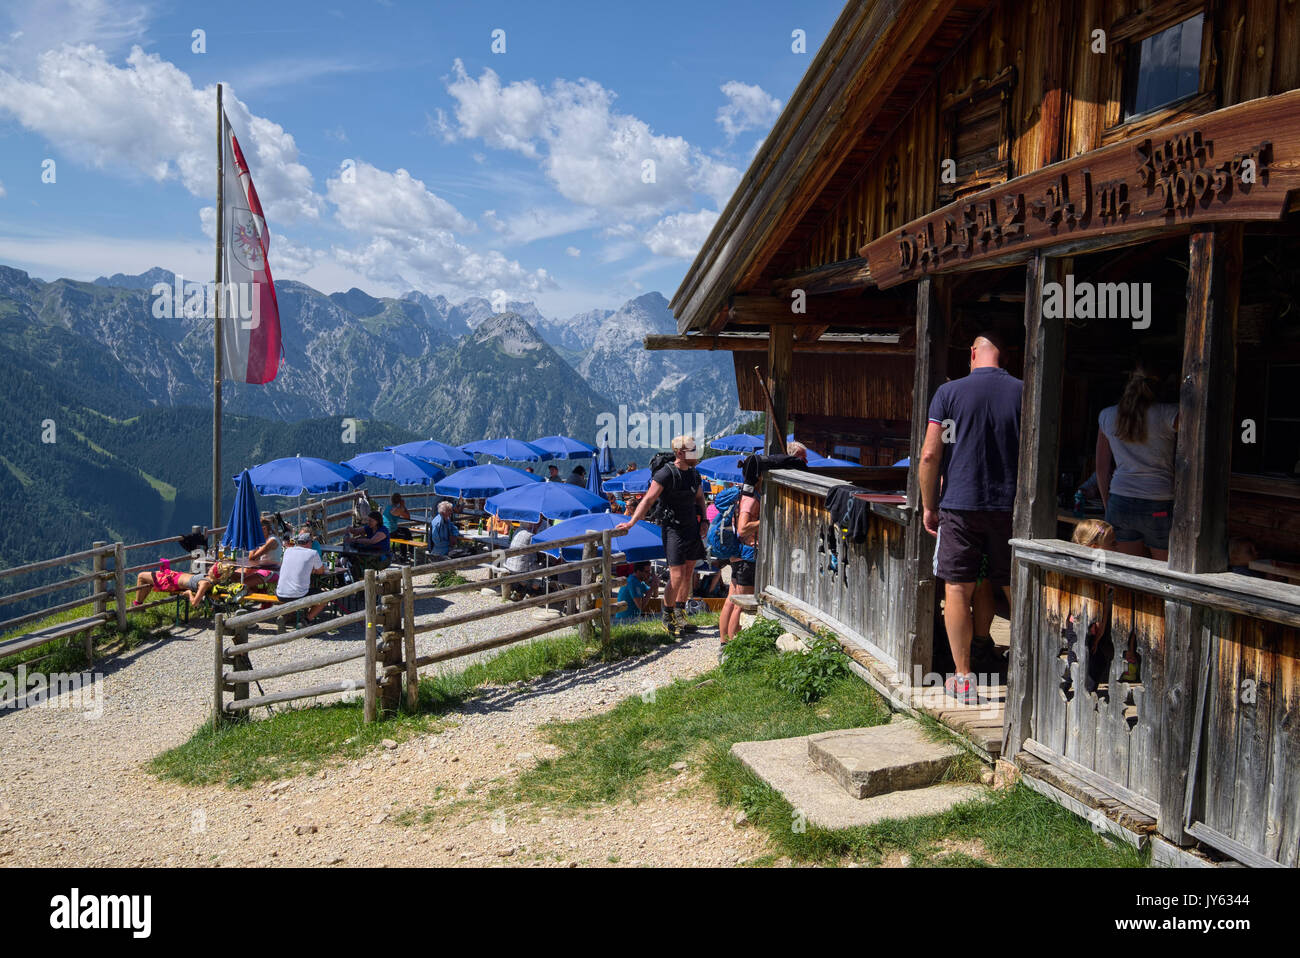 Dalfazalm alp and mountain hut on a sunny day crowded with hikers, Tyrol, Austria - Stock Image